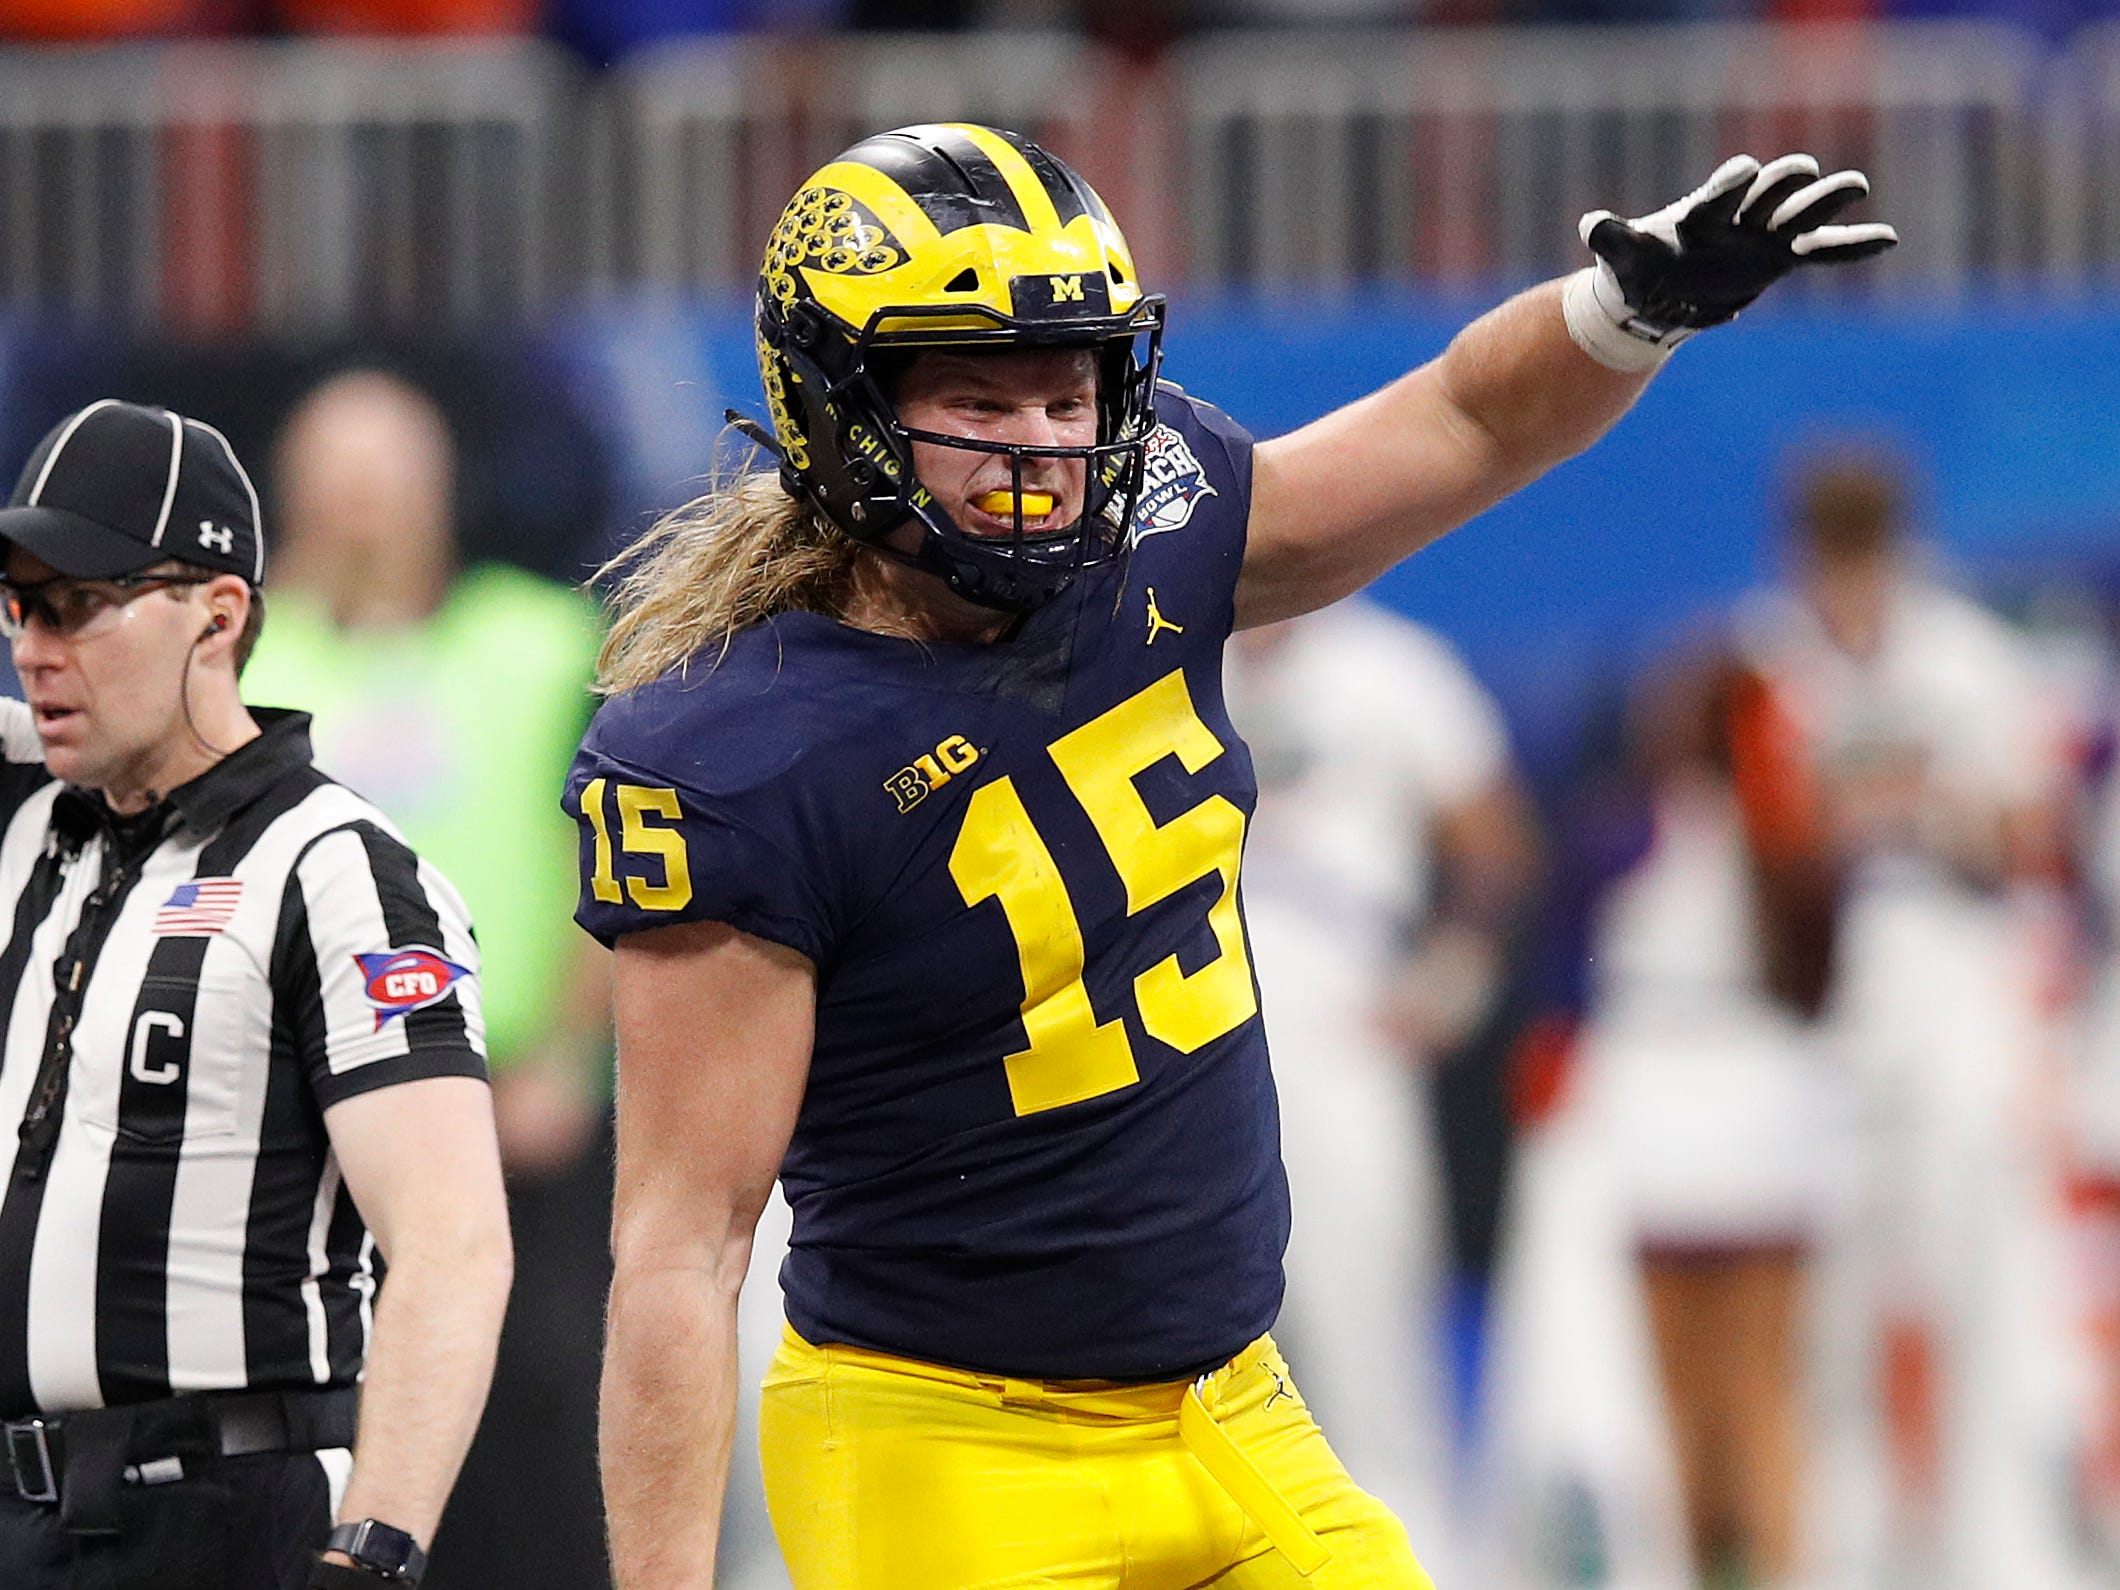 Michigan defensive lineman Chase Winovich celebrates a tackle in the third quarter against Florida during the first half on Saturday, Dec. 29, 2018, in Atlanta.